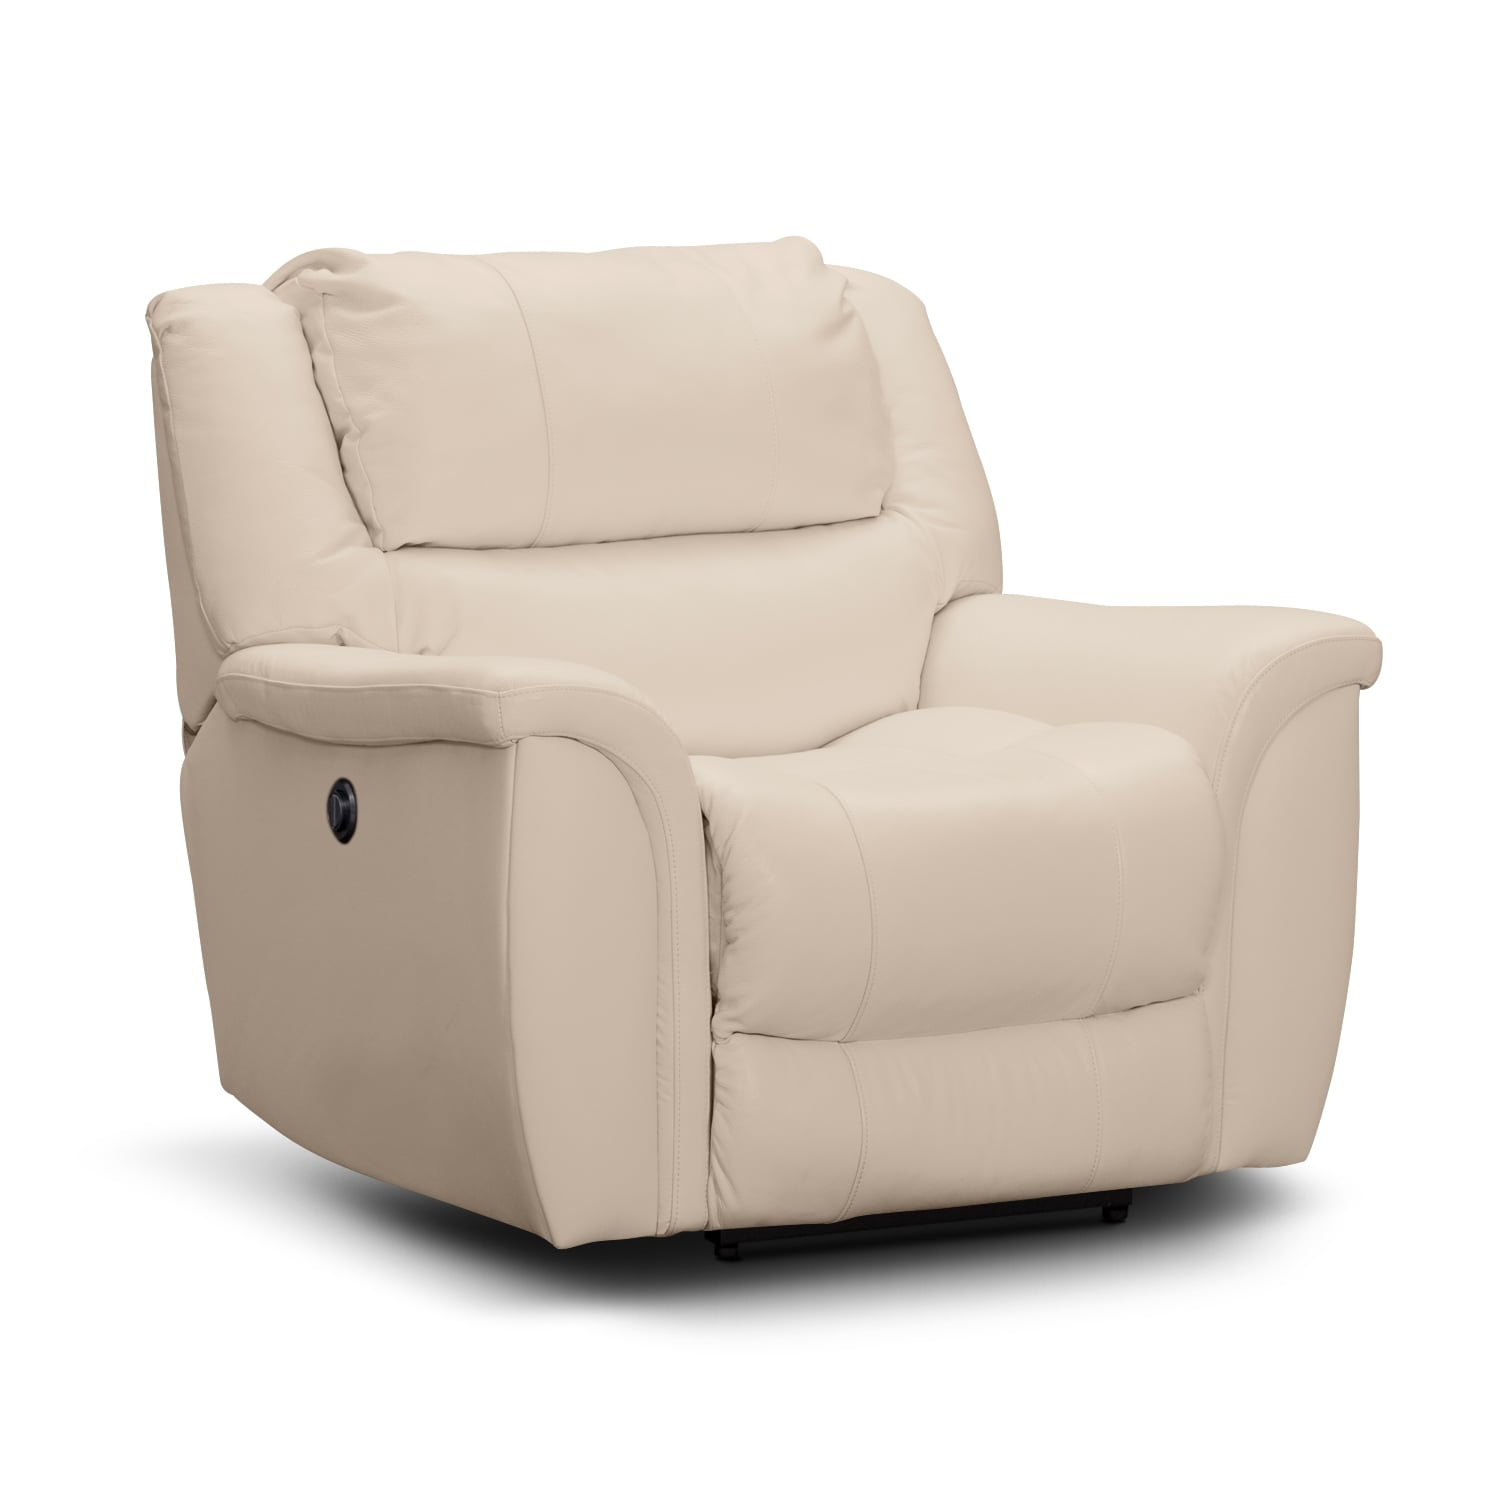 Living Room Furniture - Aquarius Power Recliner